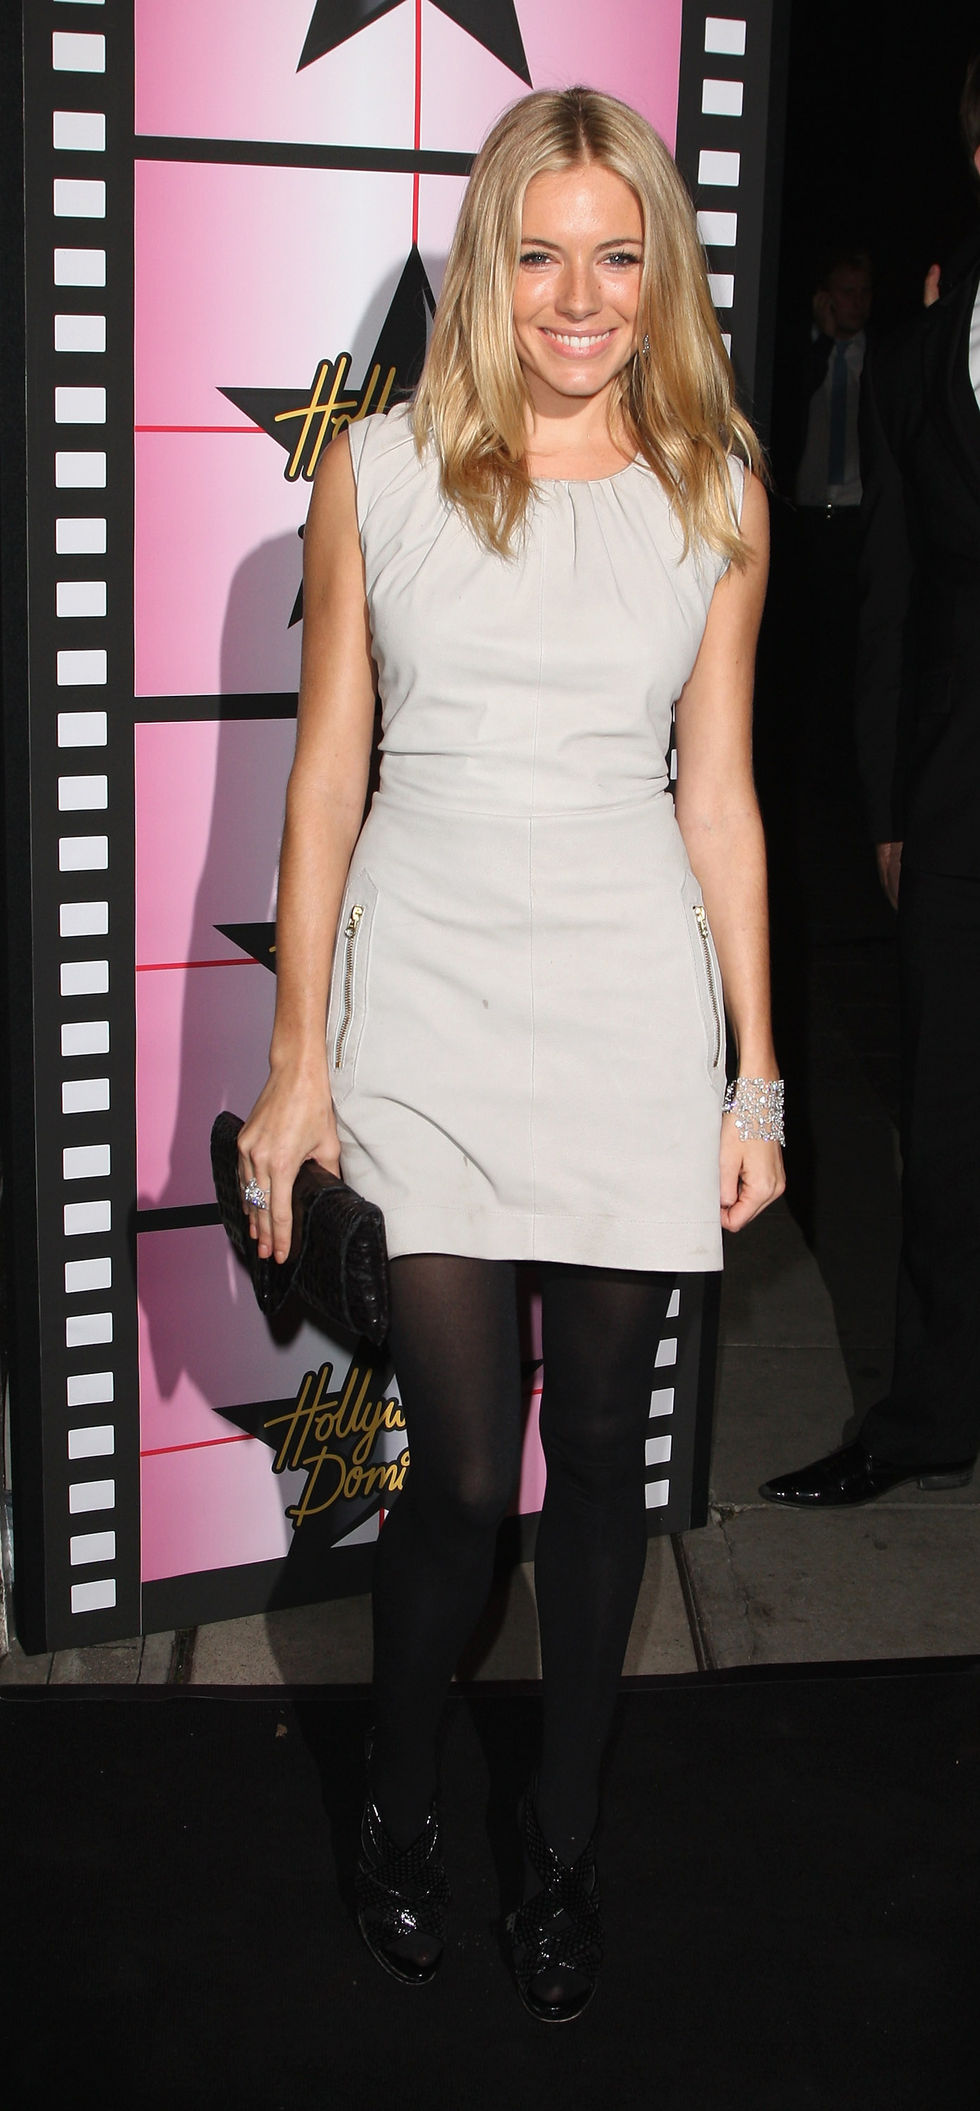 sienna-miller-hollywood-dominos-vip-launch-in-london-01